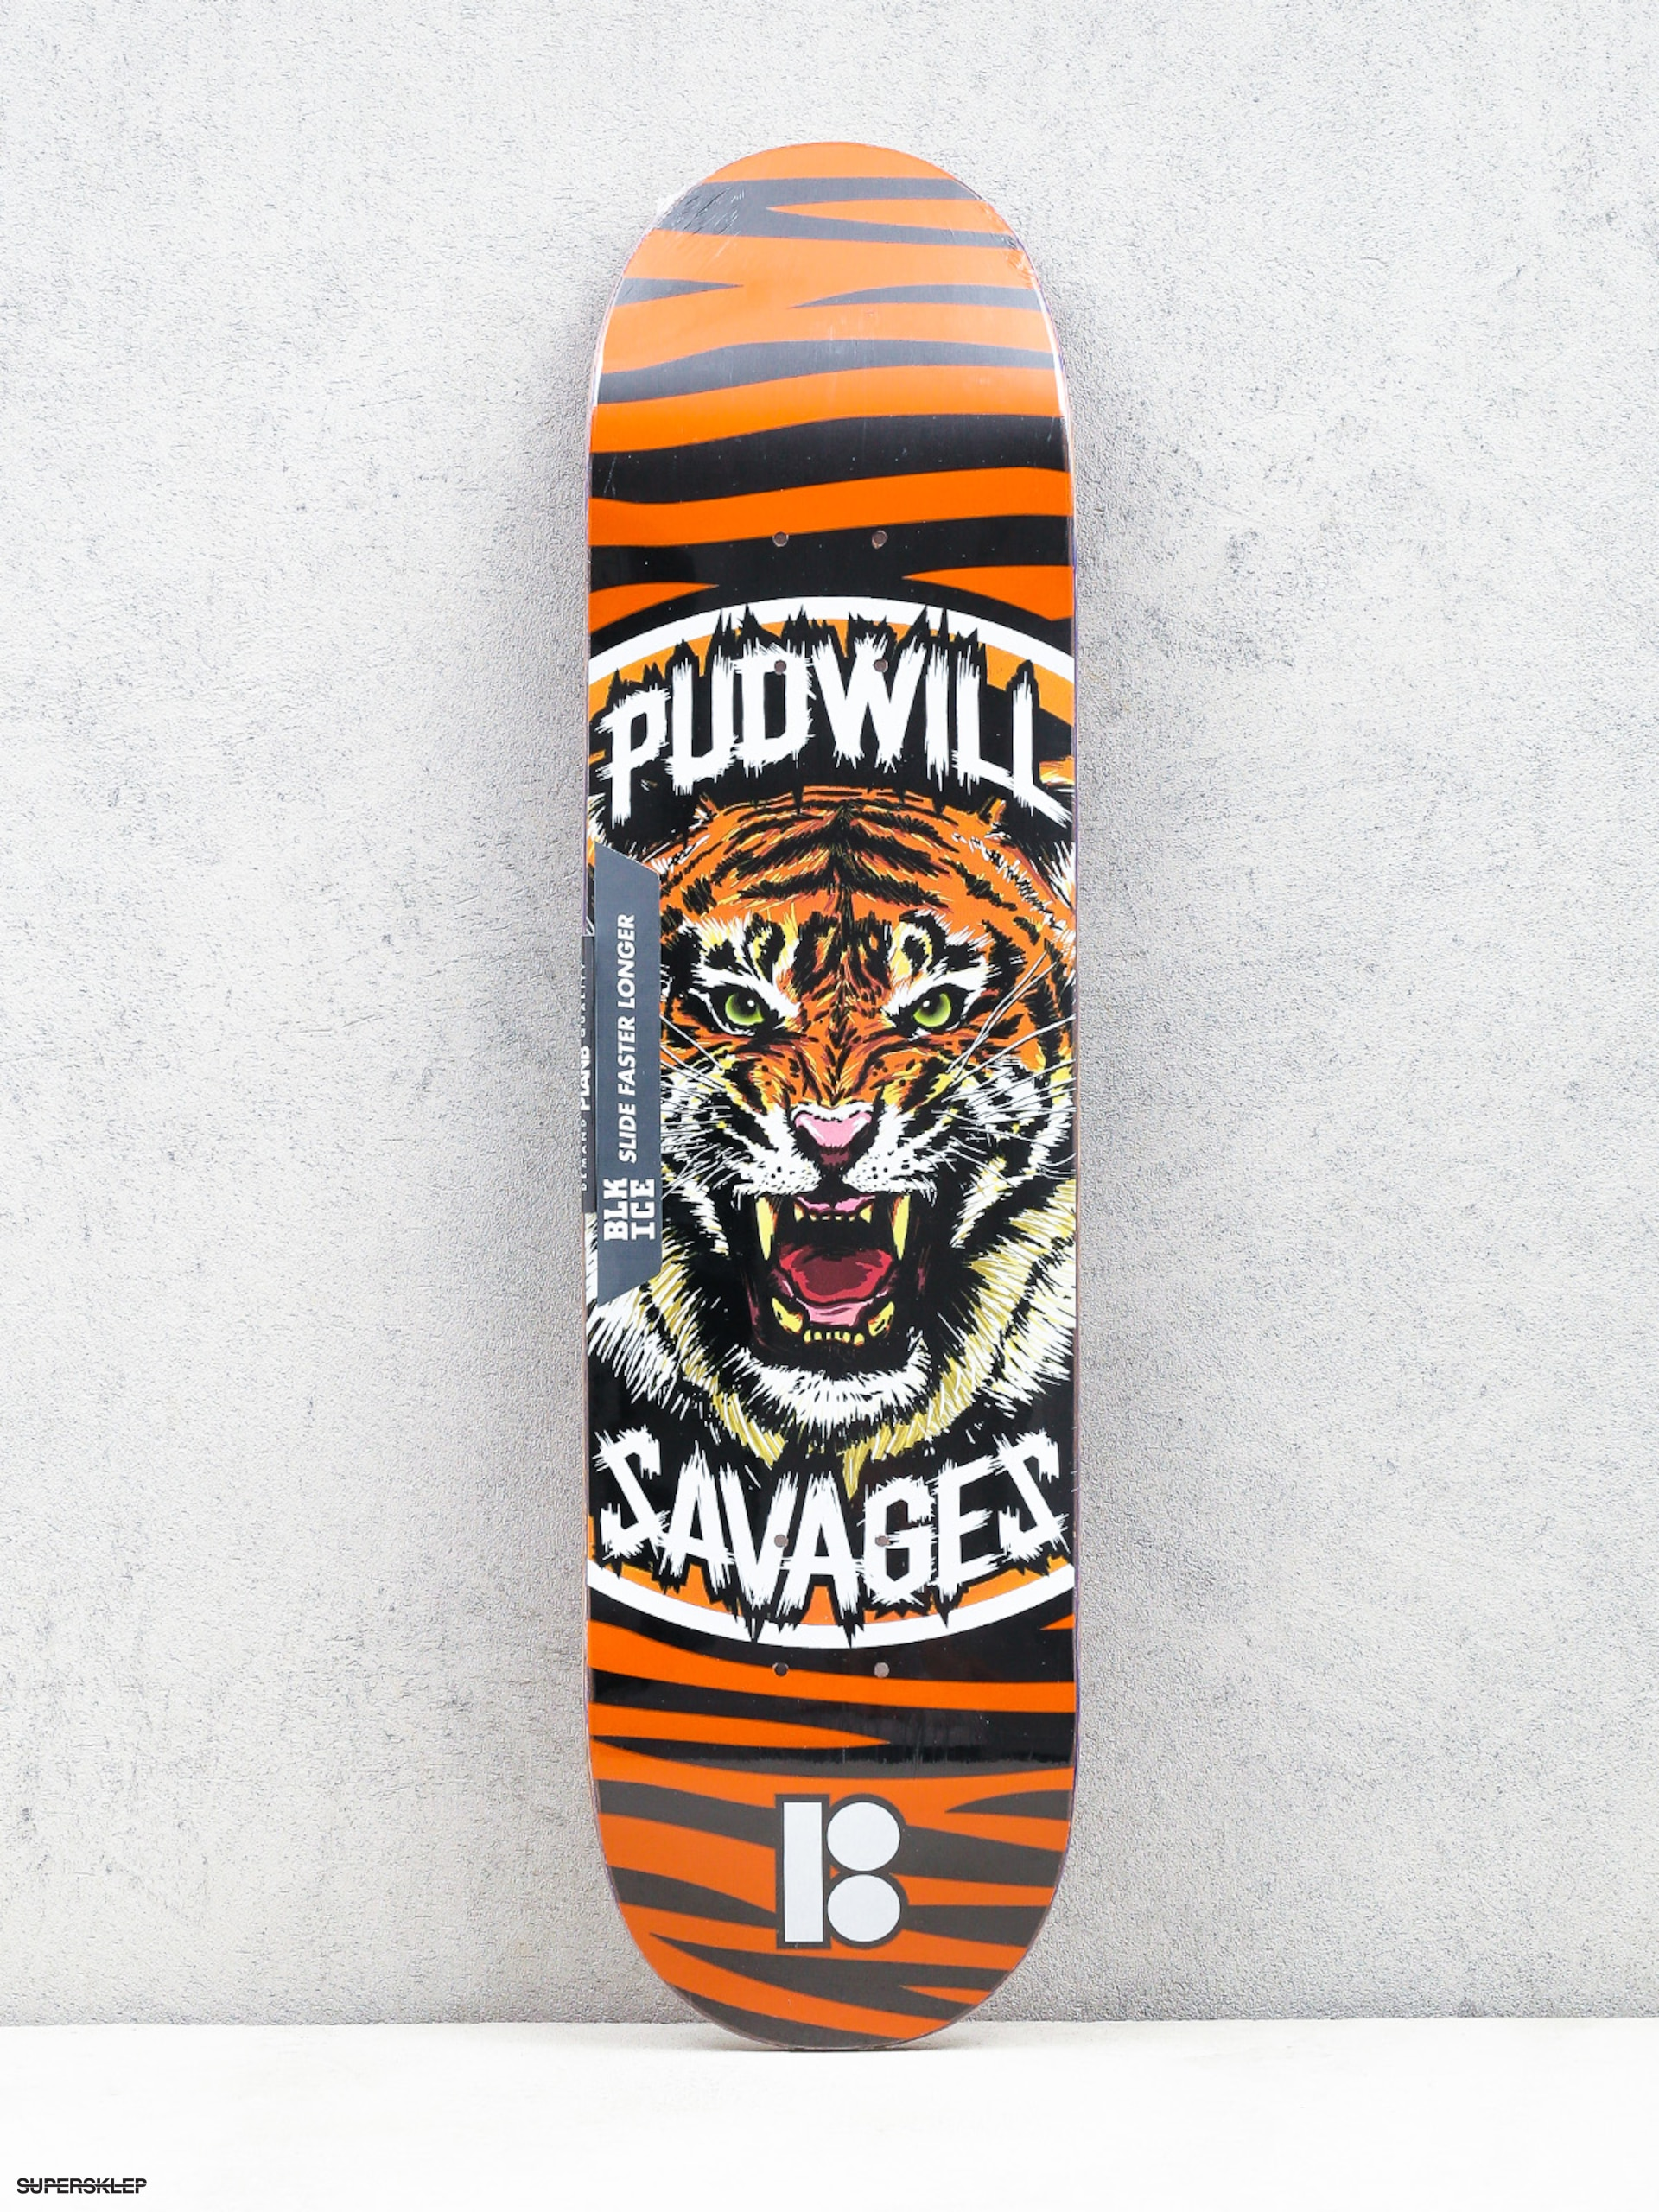 Deska Plan B Pudwill Savages (orange/black)